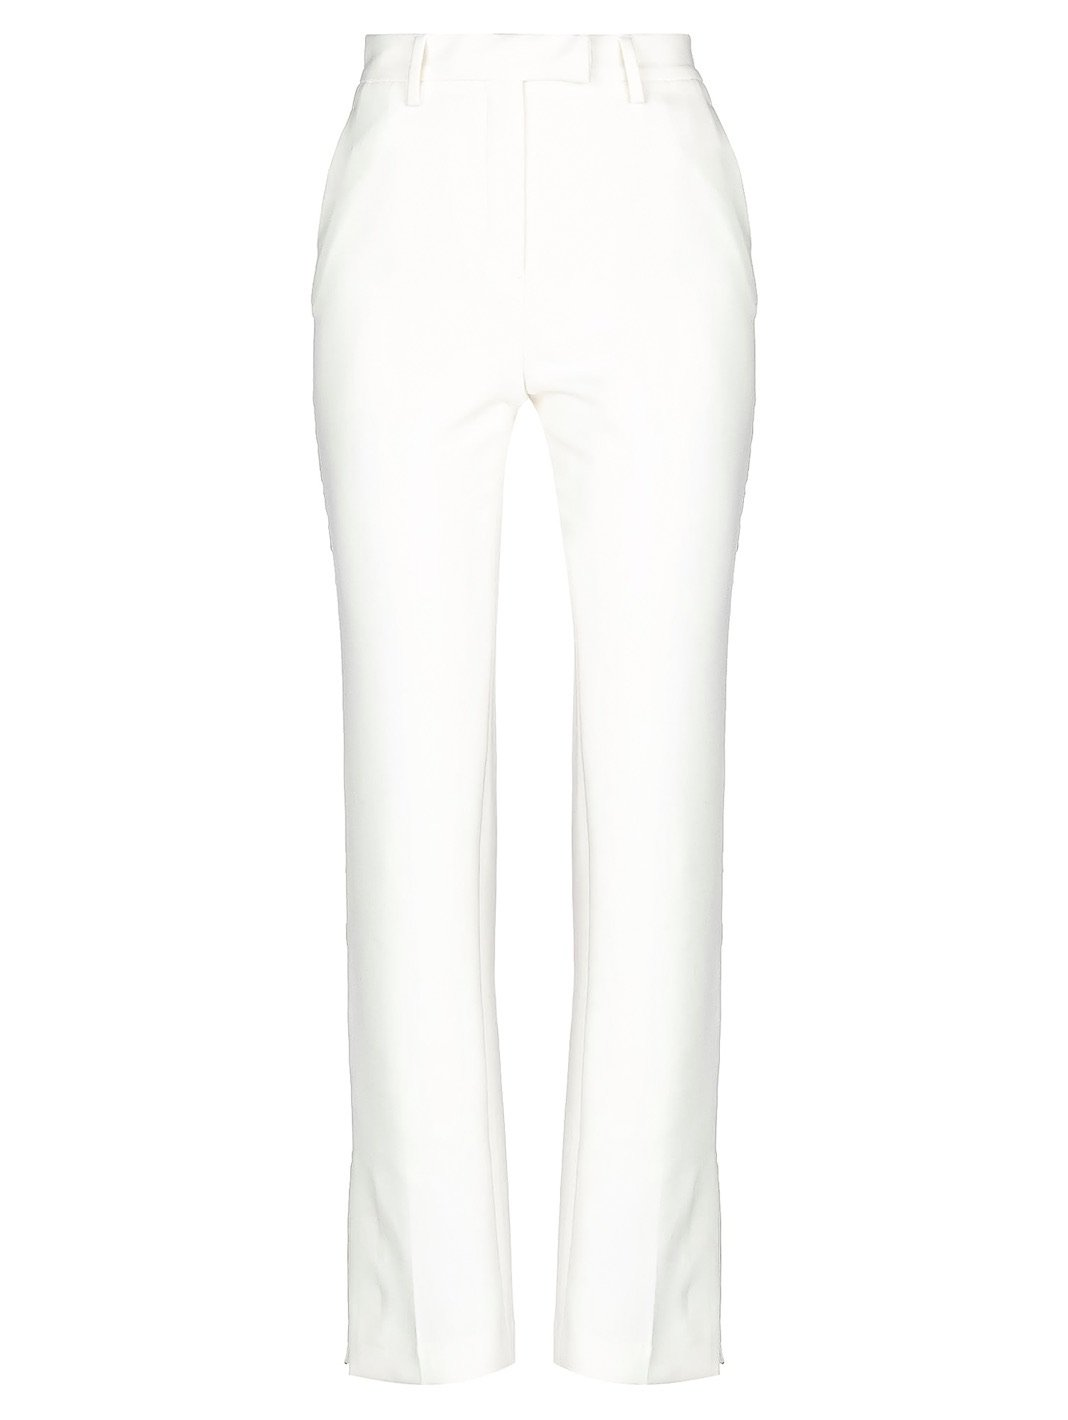 Stars Side-Seam Casual Pants Ivory - The Bobby Boga